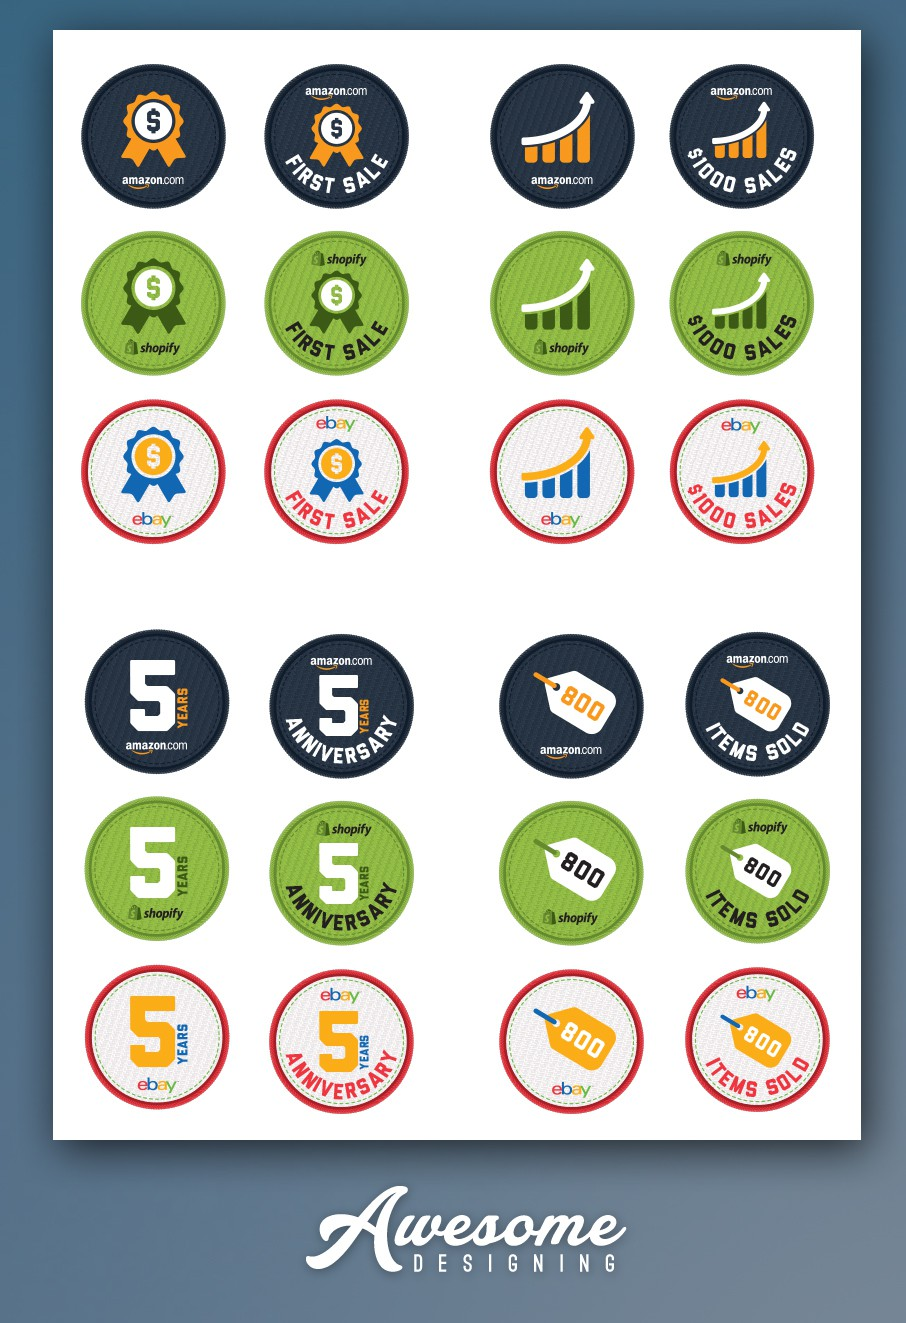 Gamified Merit Badges for e-Commerce sellers and retailers